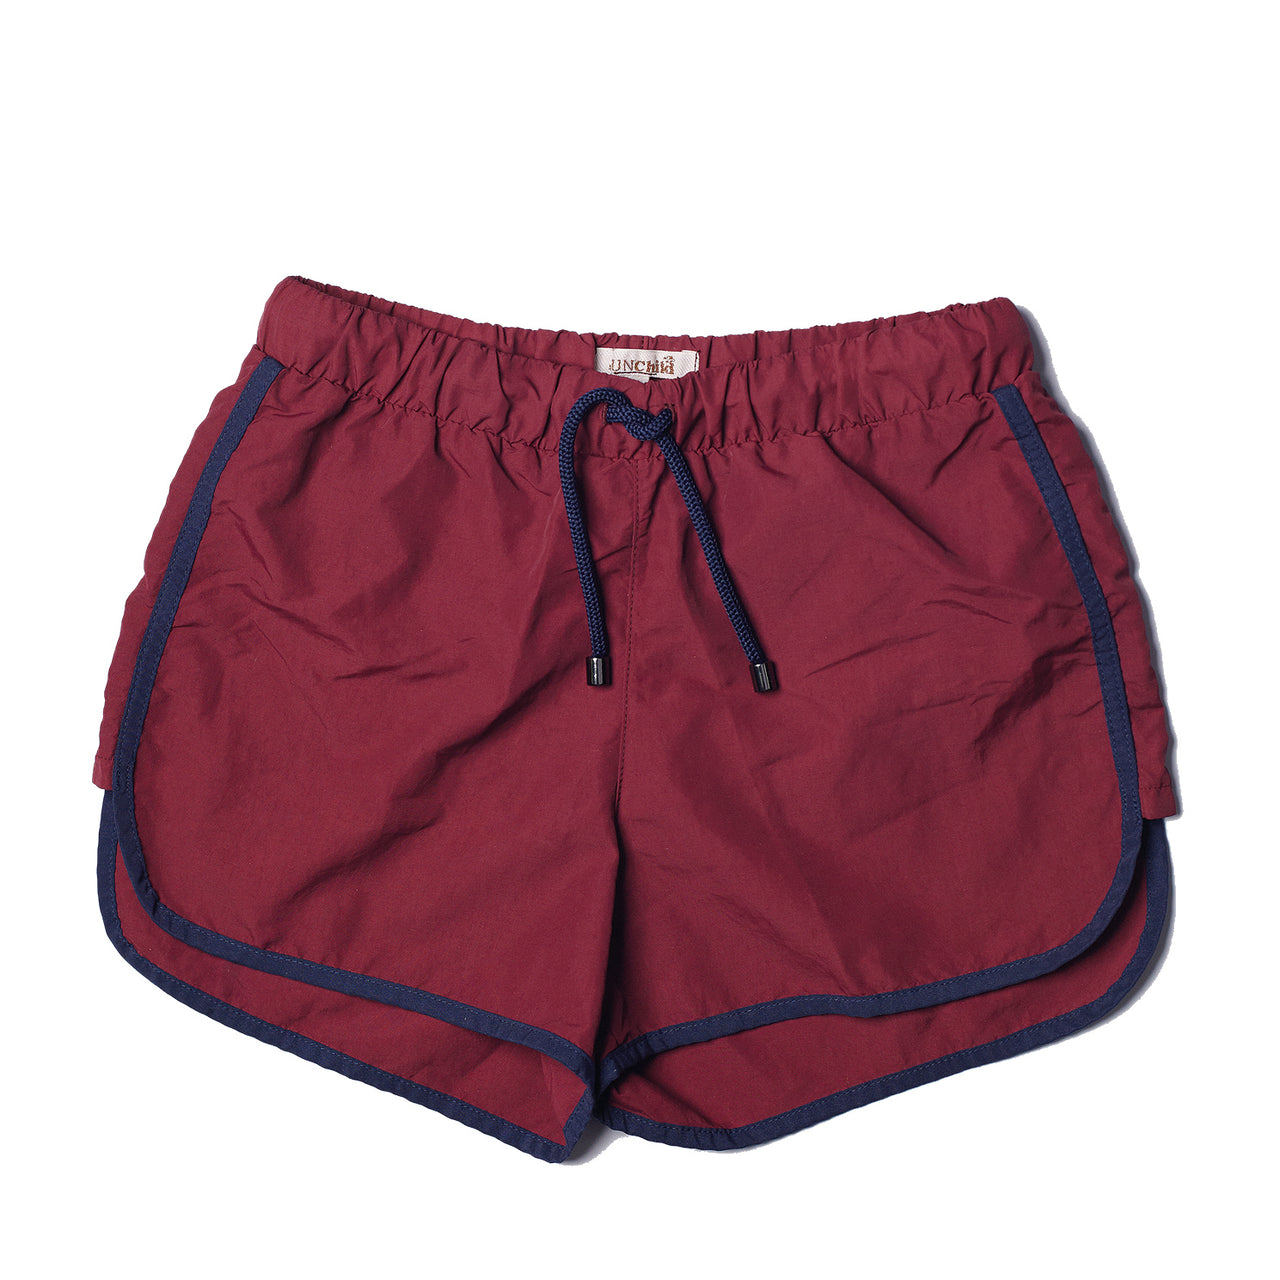 Carlos Swim Shorts, Berry